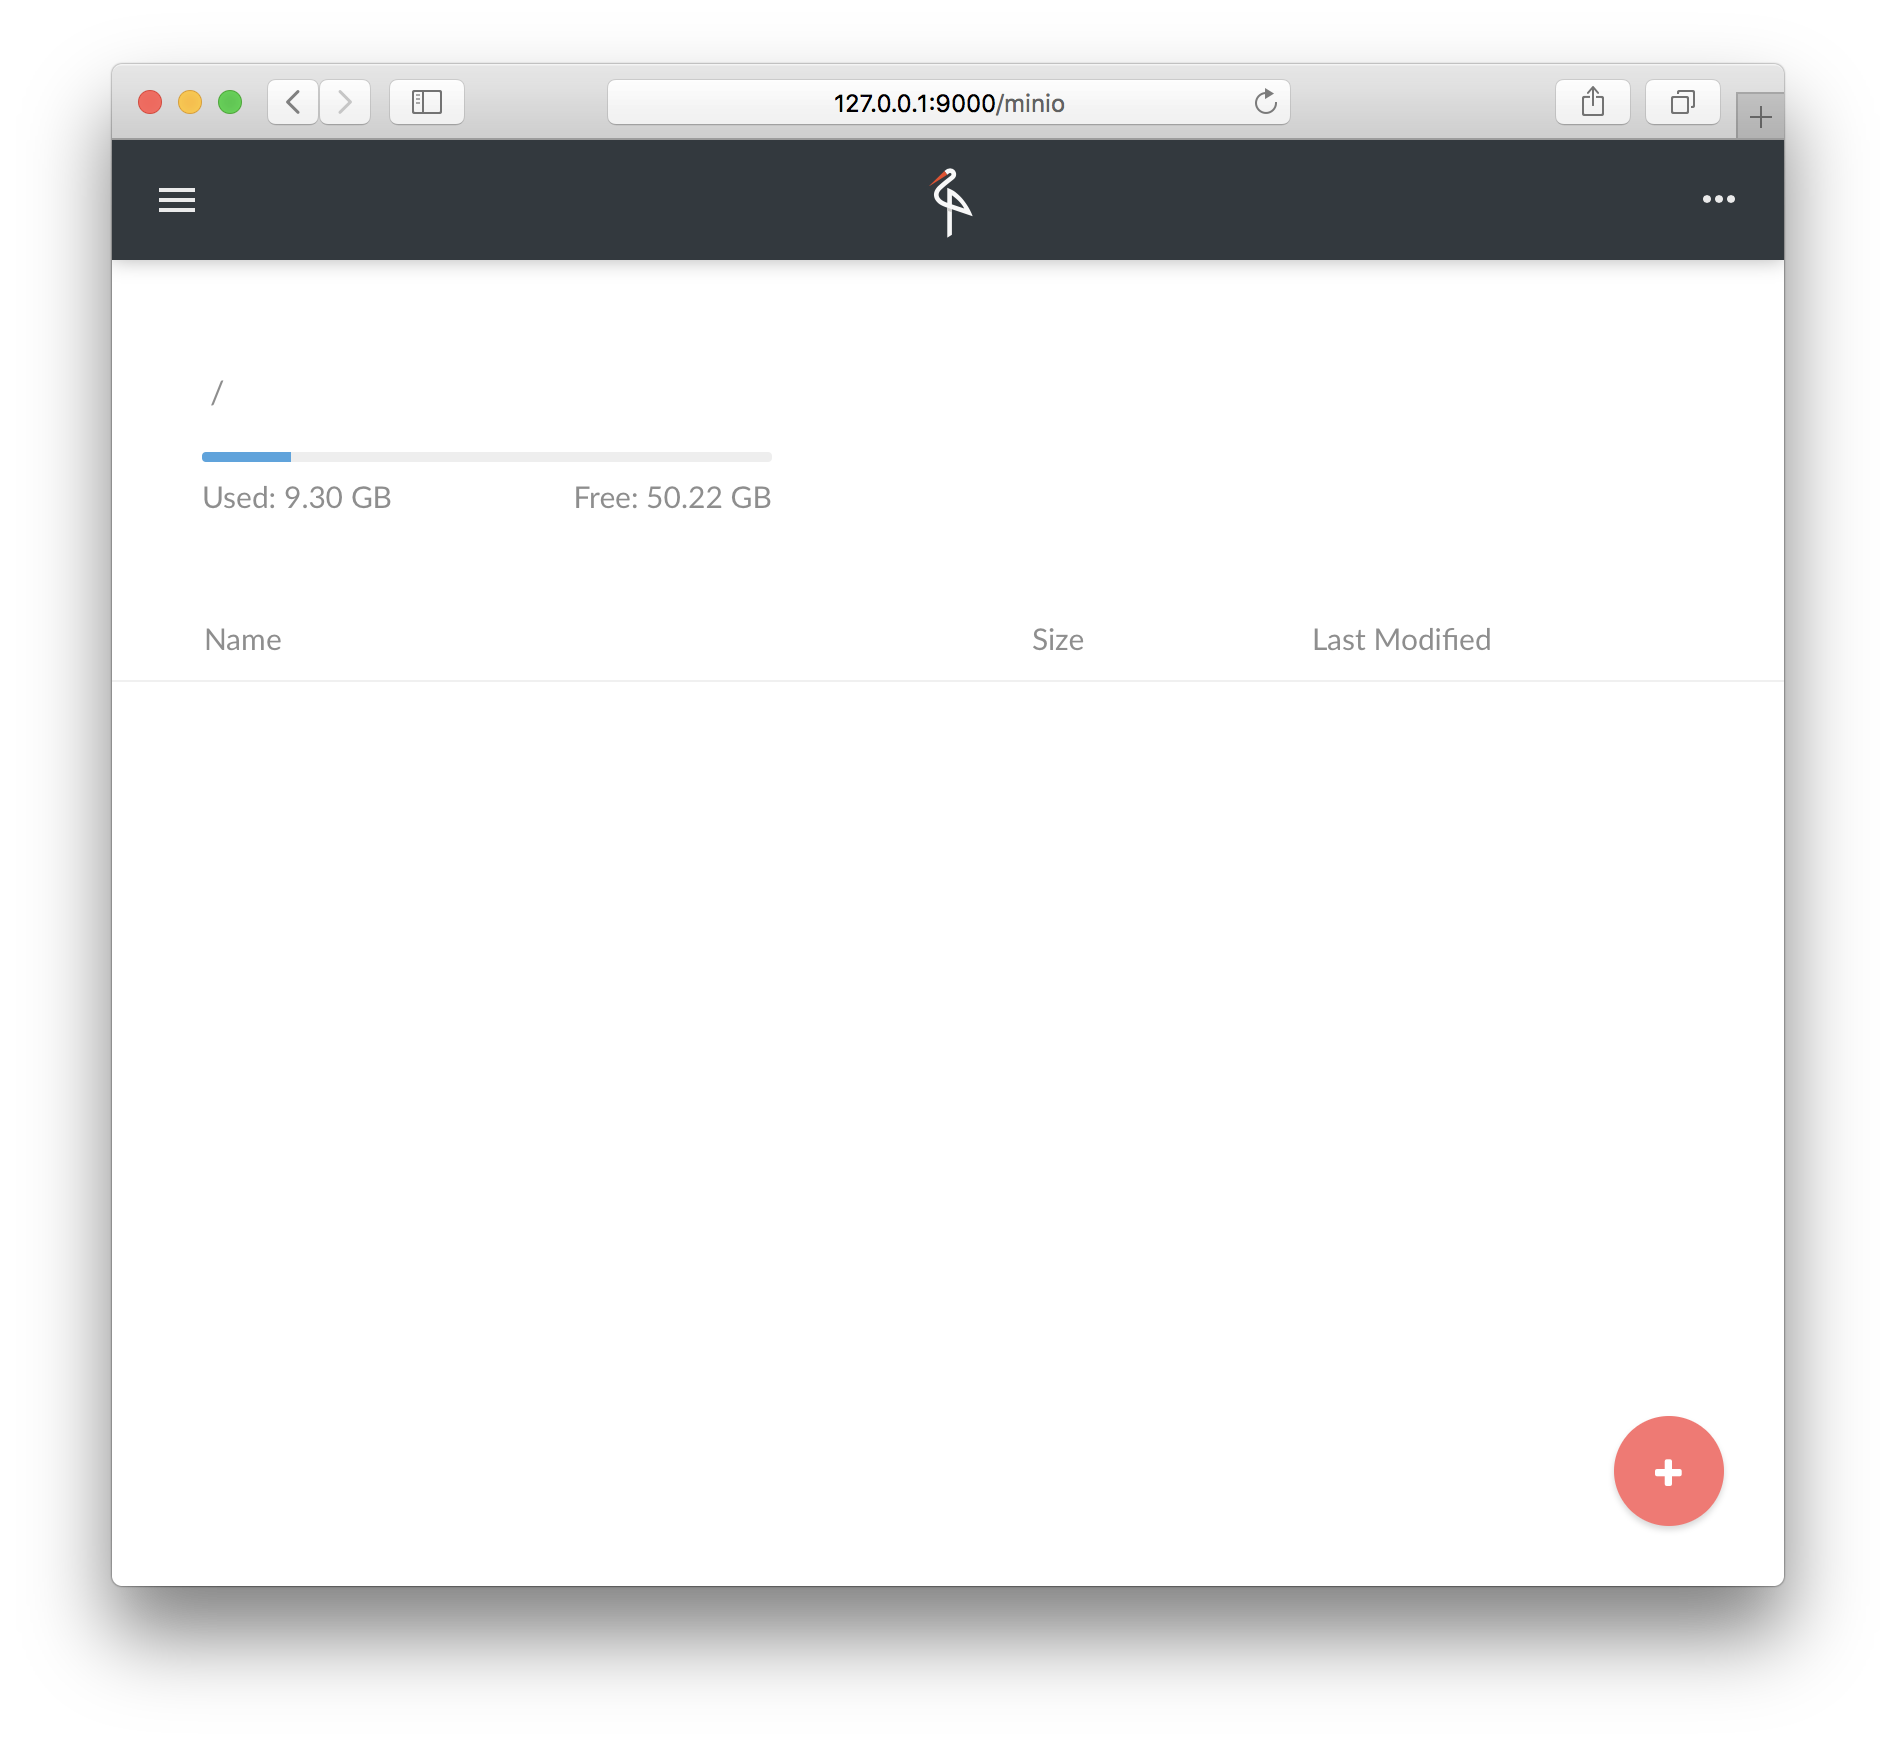 A Tiny Functional CRUD for Minio (S3) in a Vaadin App - DZone Java